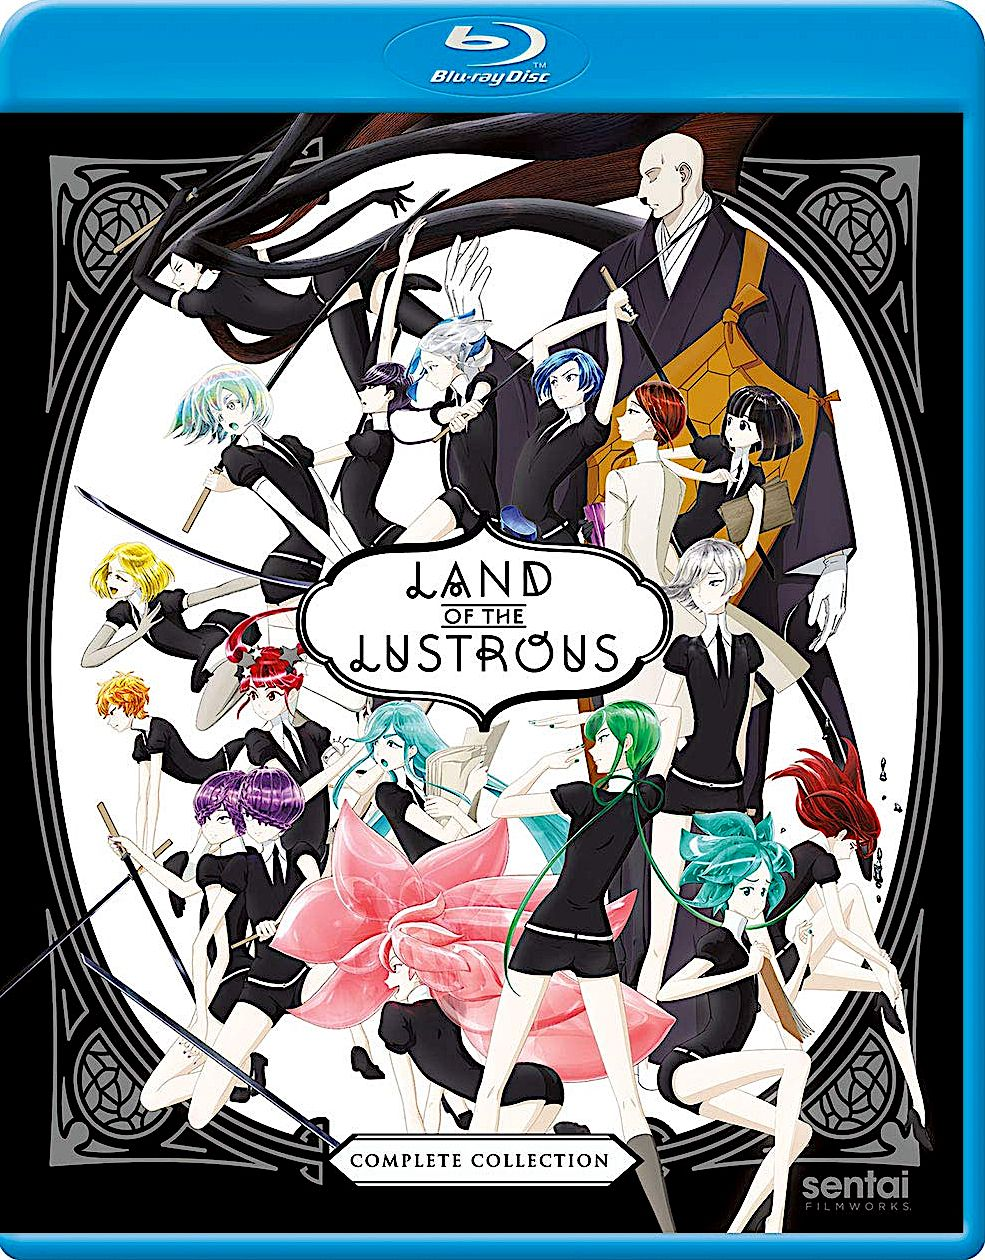 LAND OF THE LUSTROUS COMPLETE COLLECTION BLURAY SET